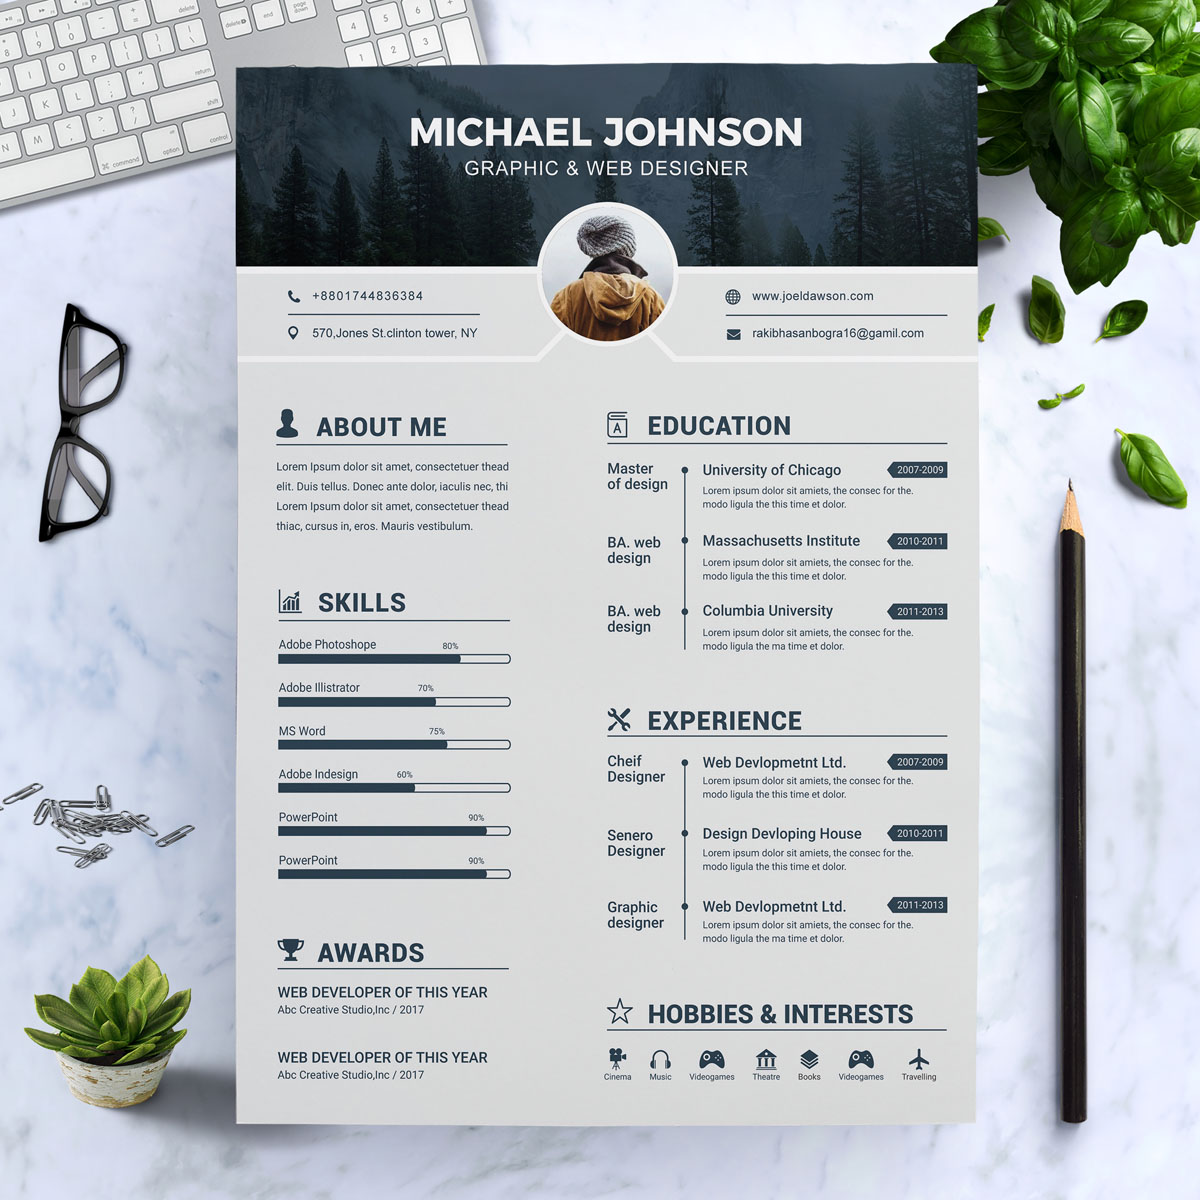 johnson graphic designer resume template  73845